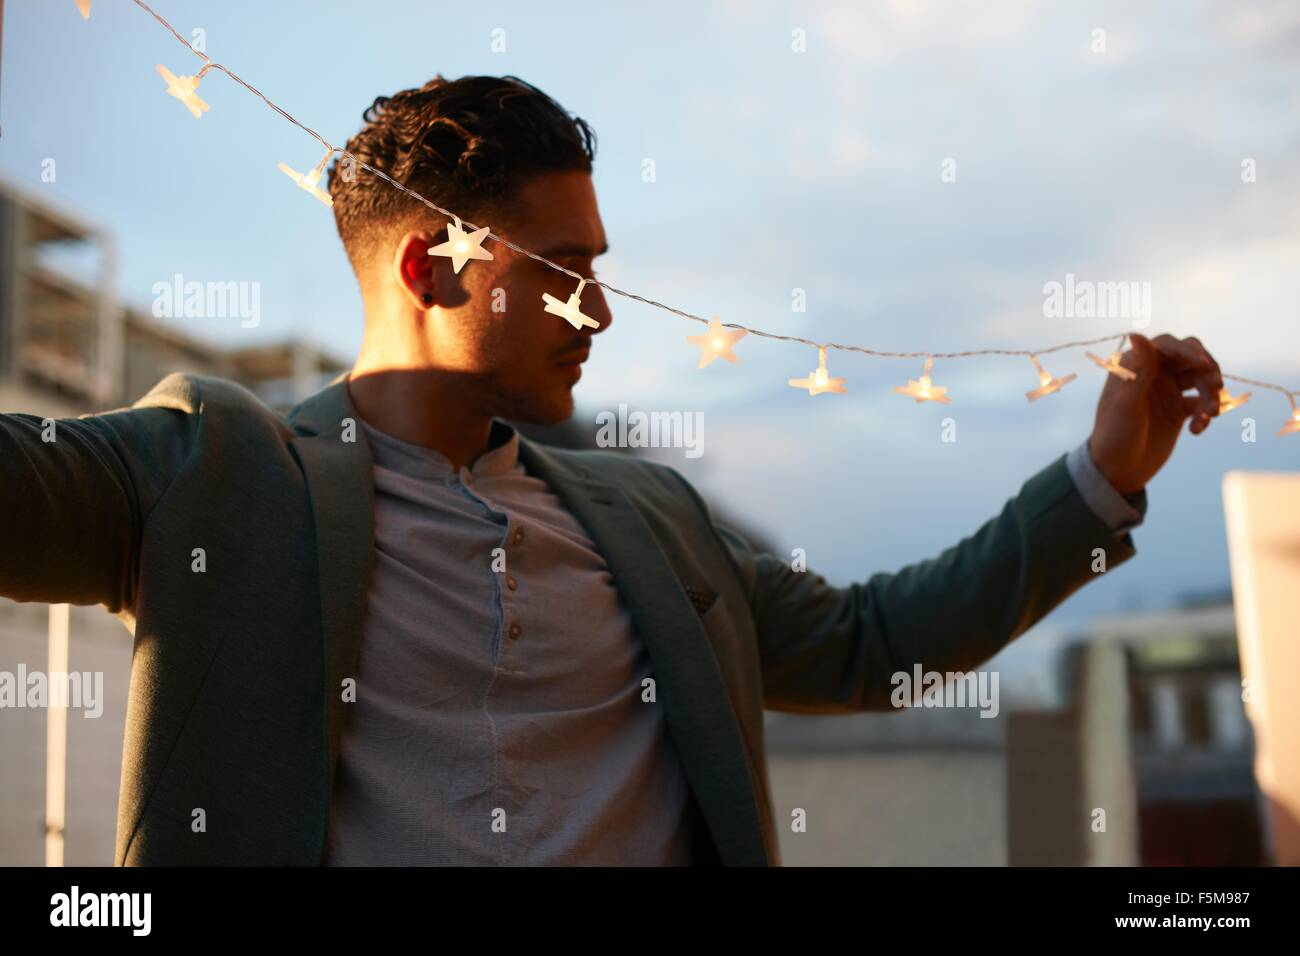 Man handing garden lights for early evening party - Stock Image